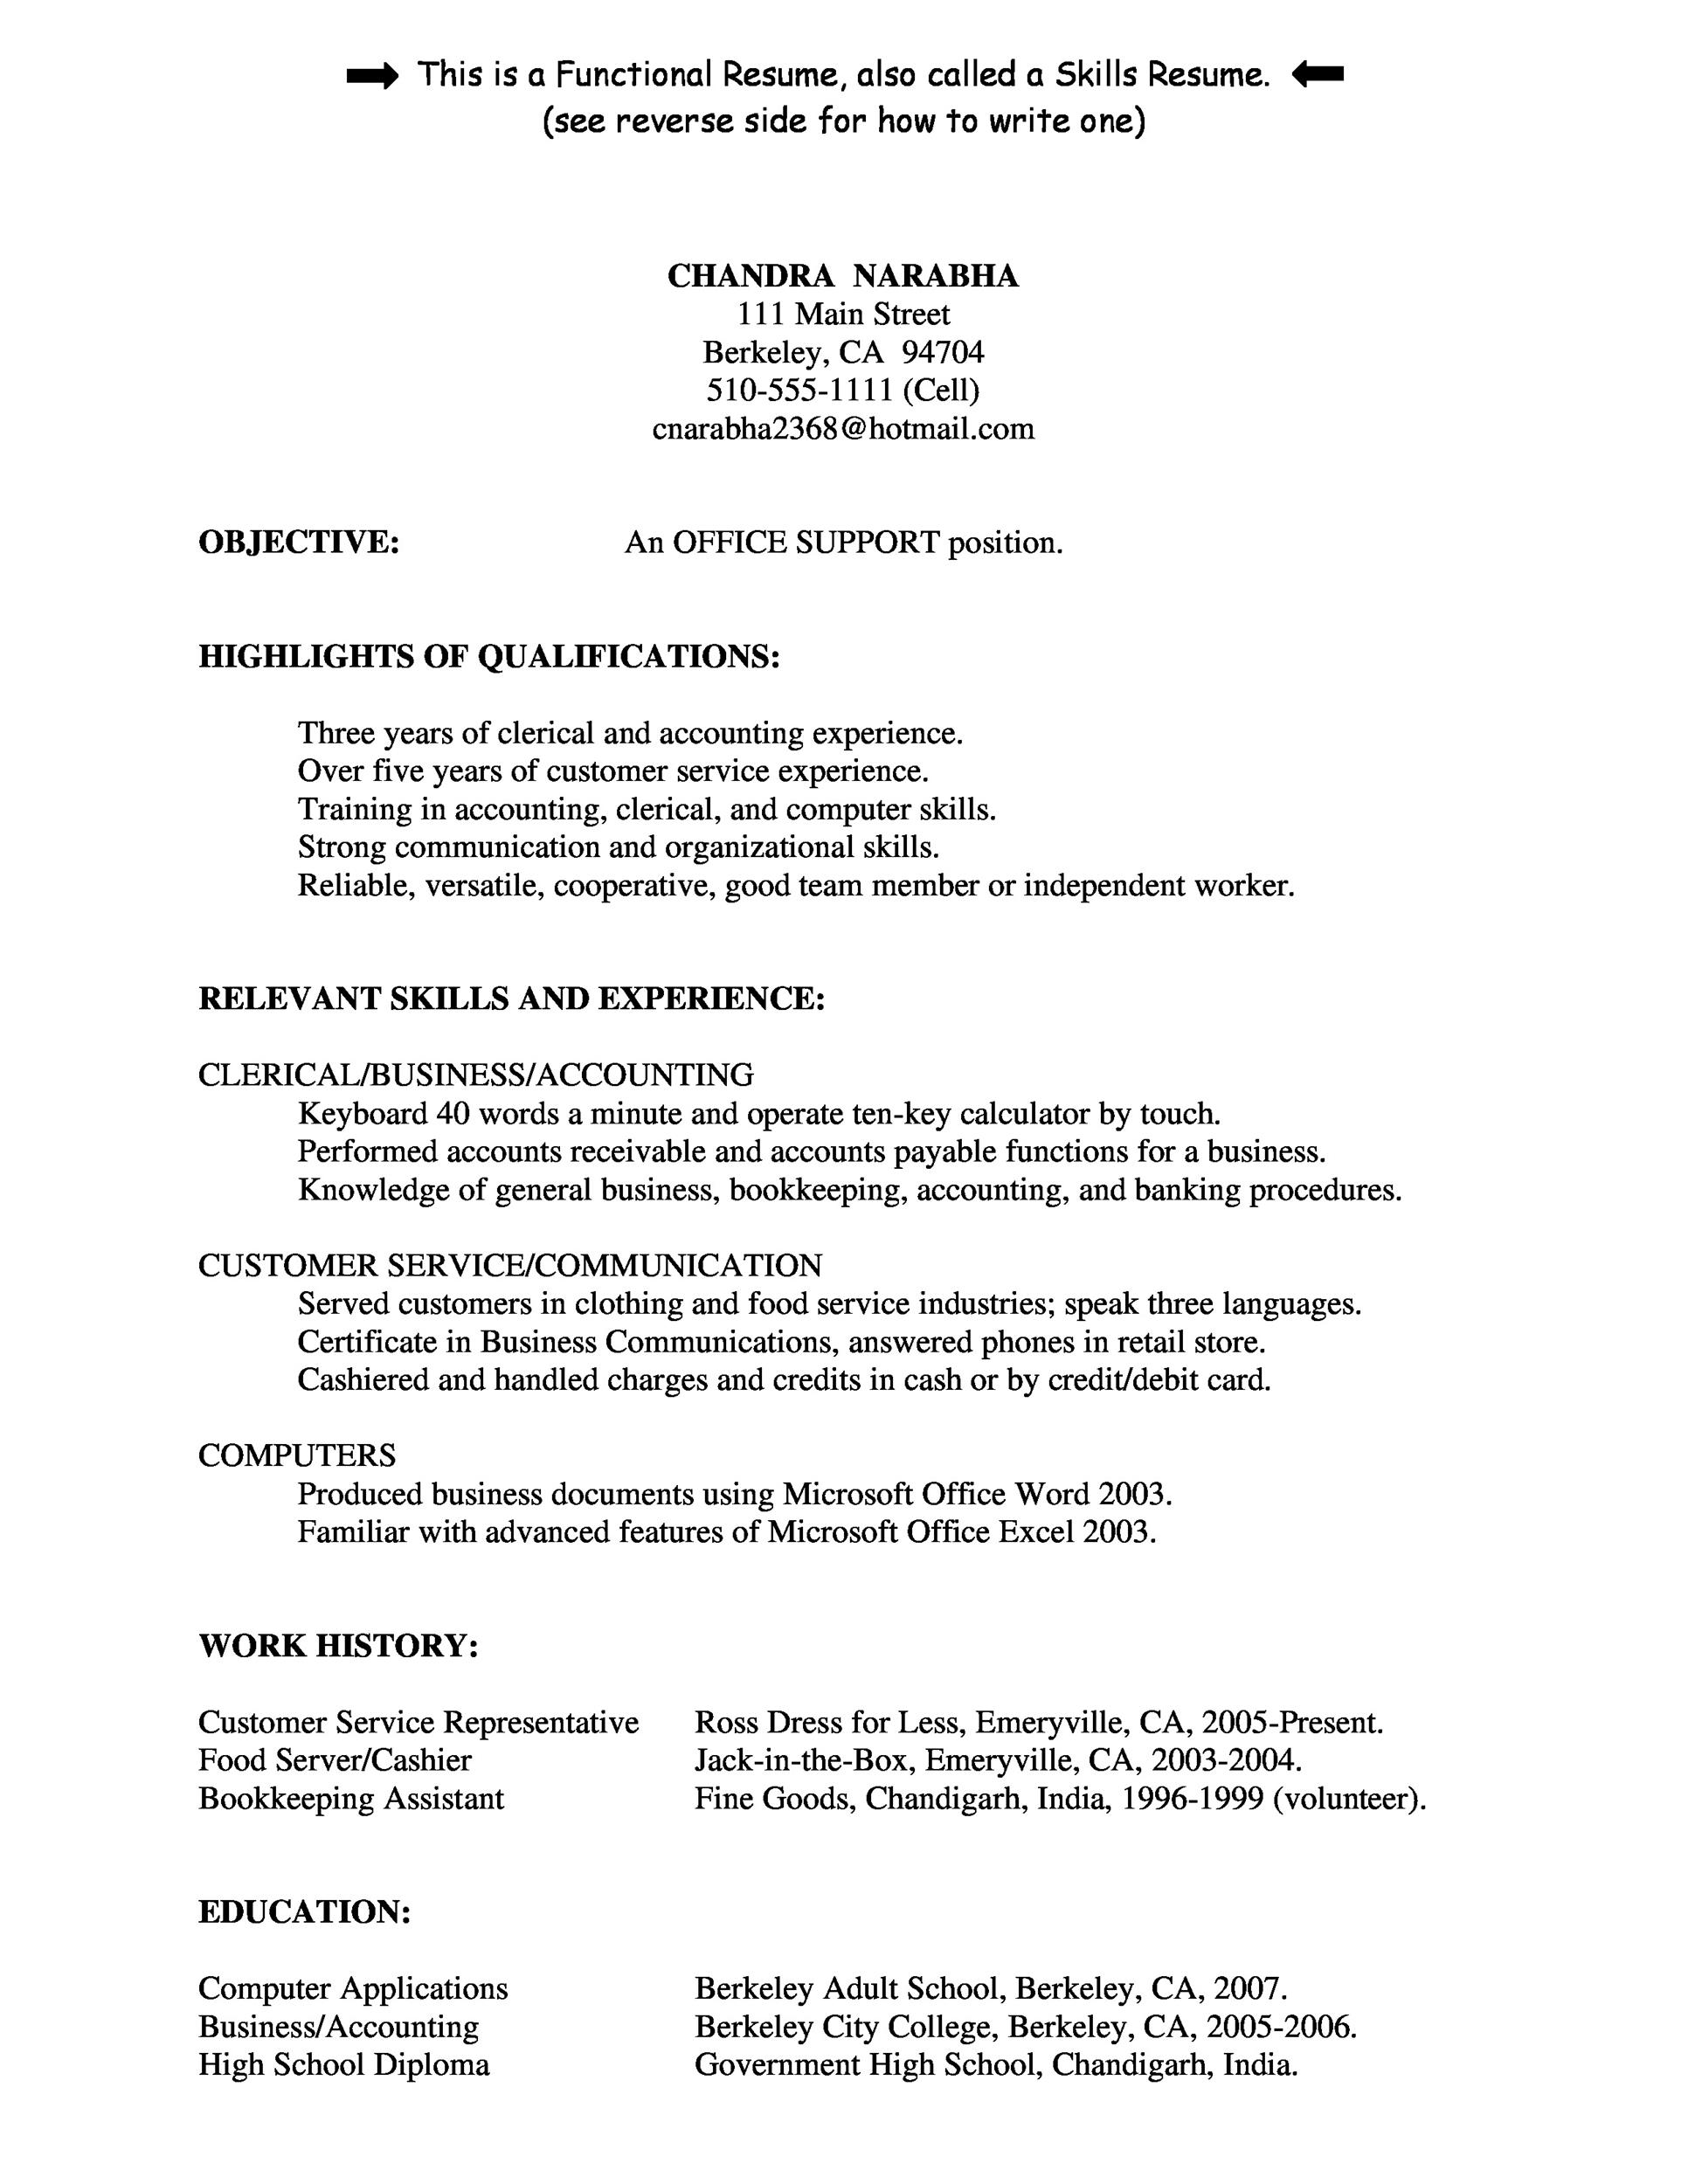 free customer service resume template 34 - Customer Service Resume